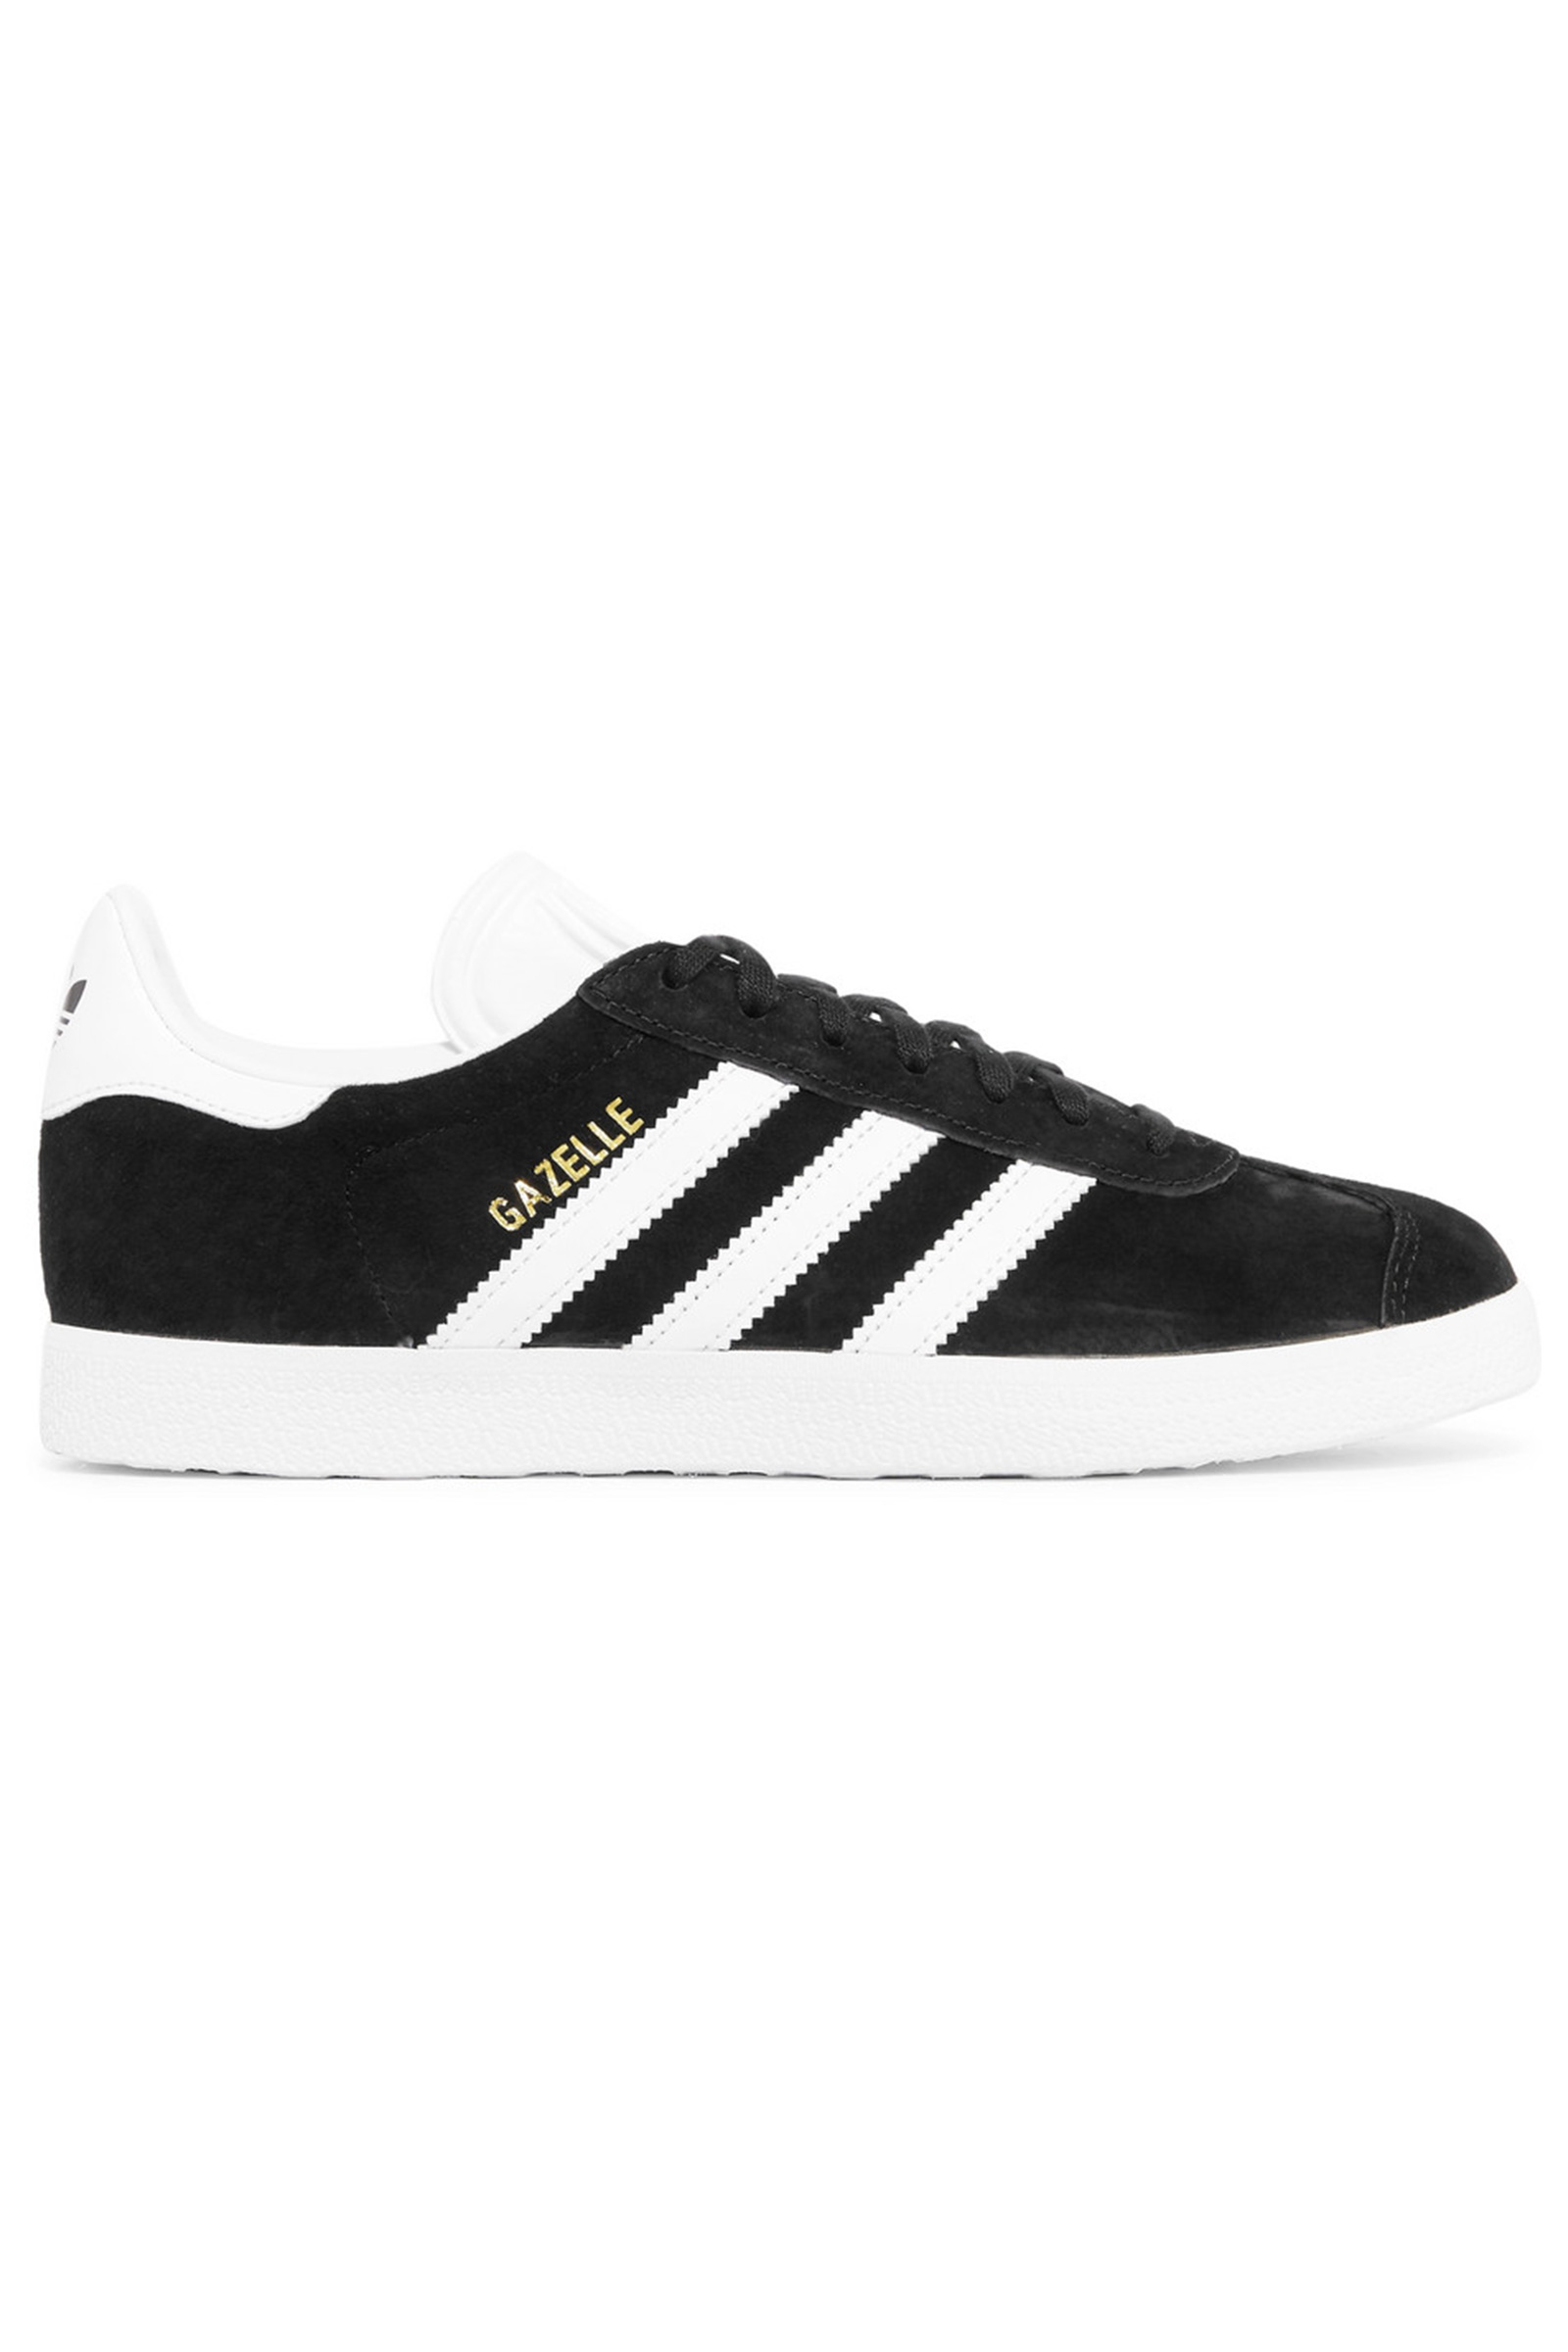 Click to Buy Adidas Originals